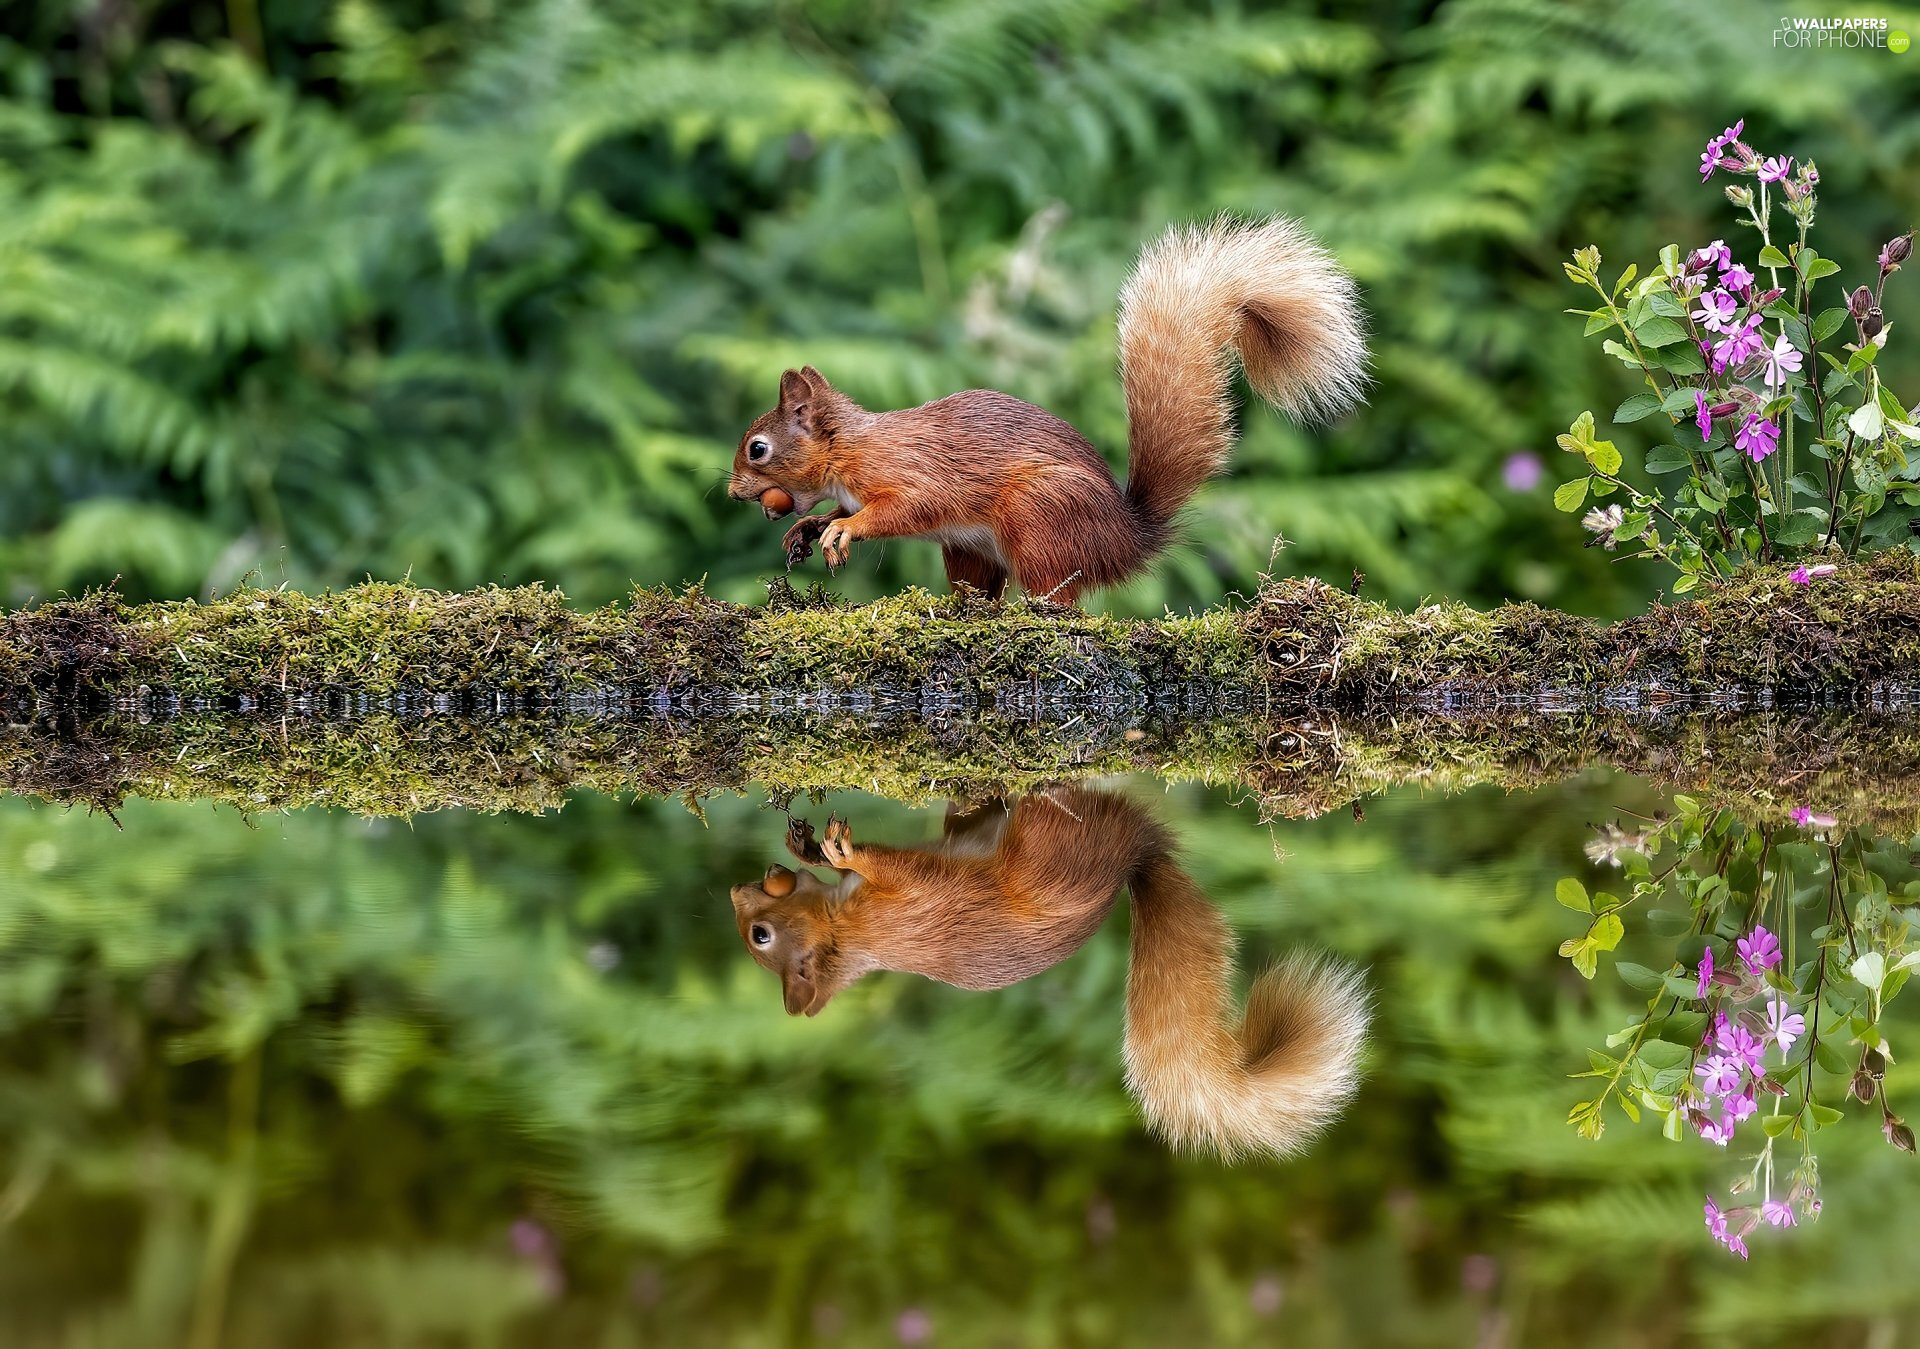 Moss, nut, water, trunk, squirrel, Flowers, reflection